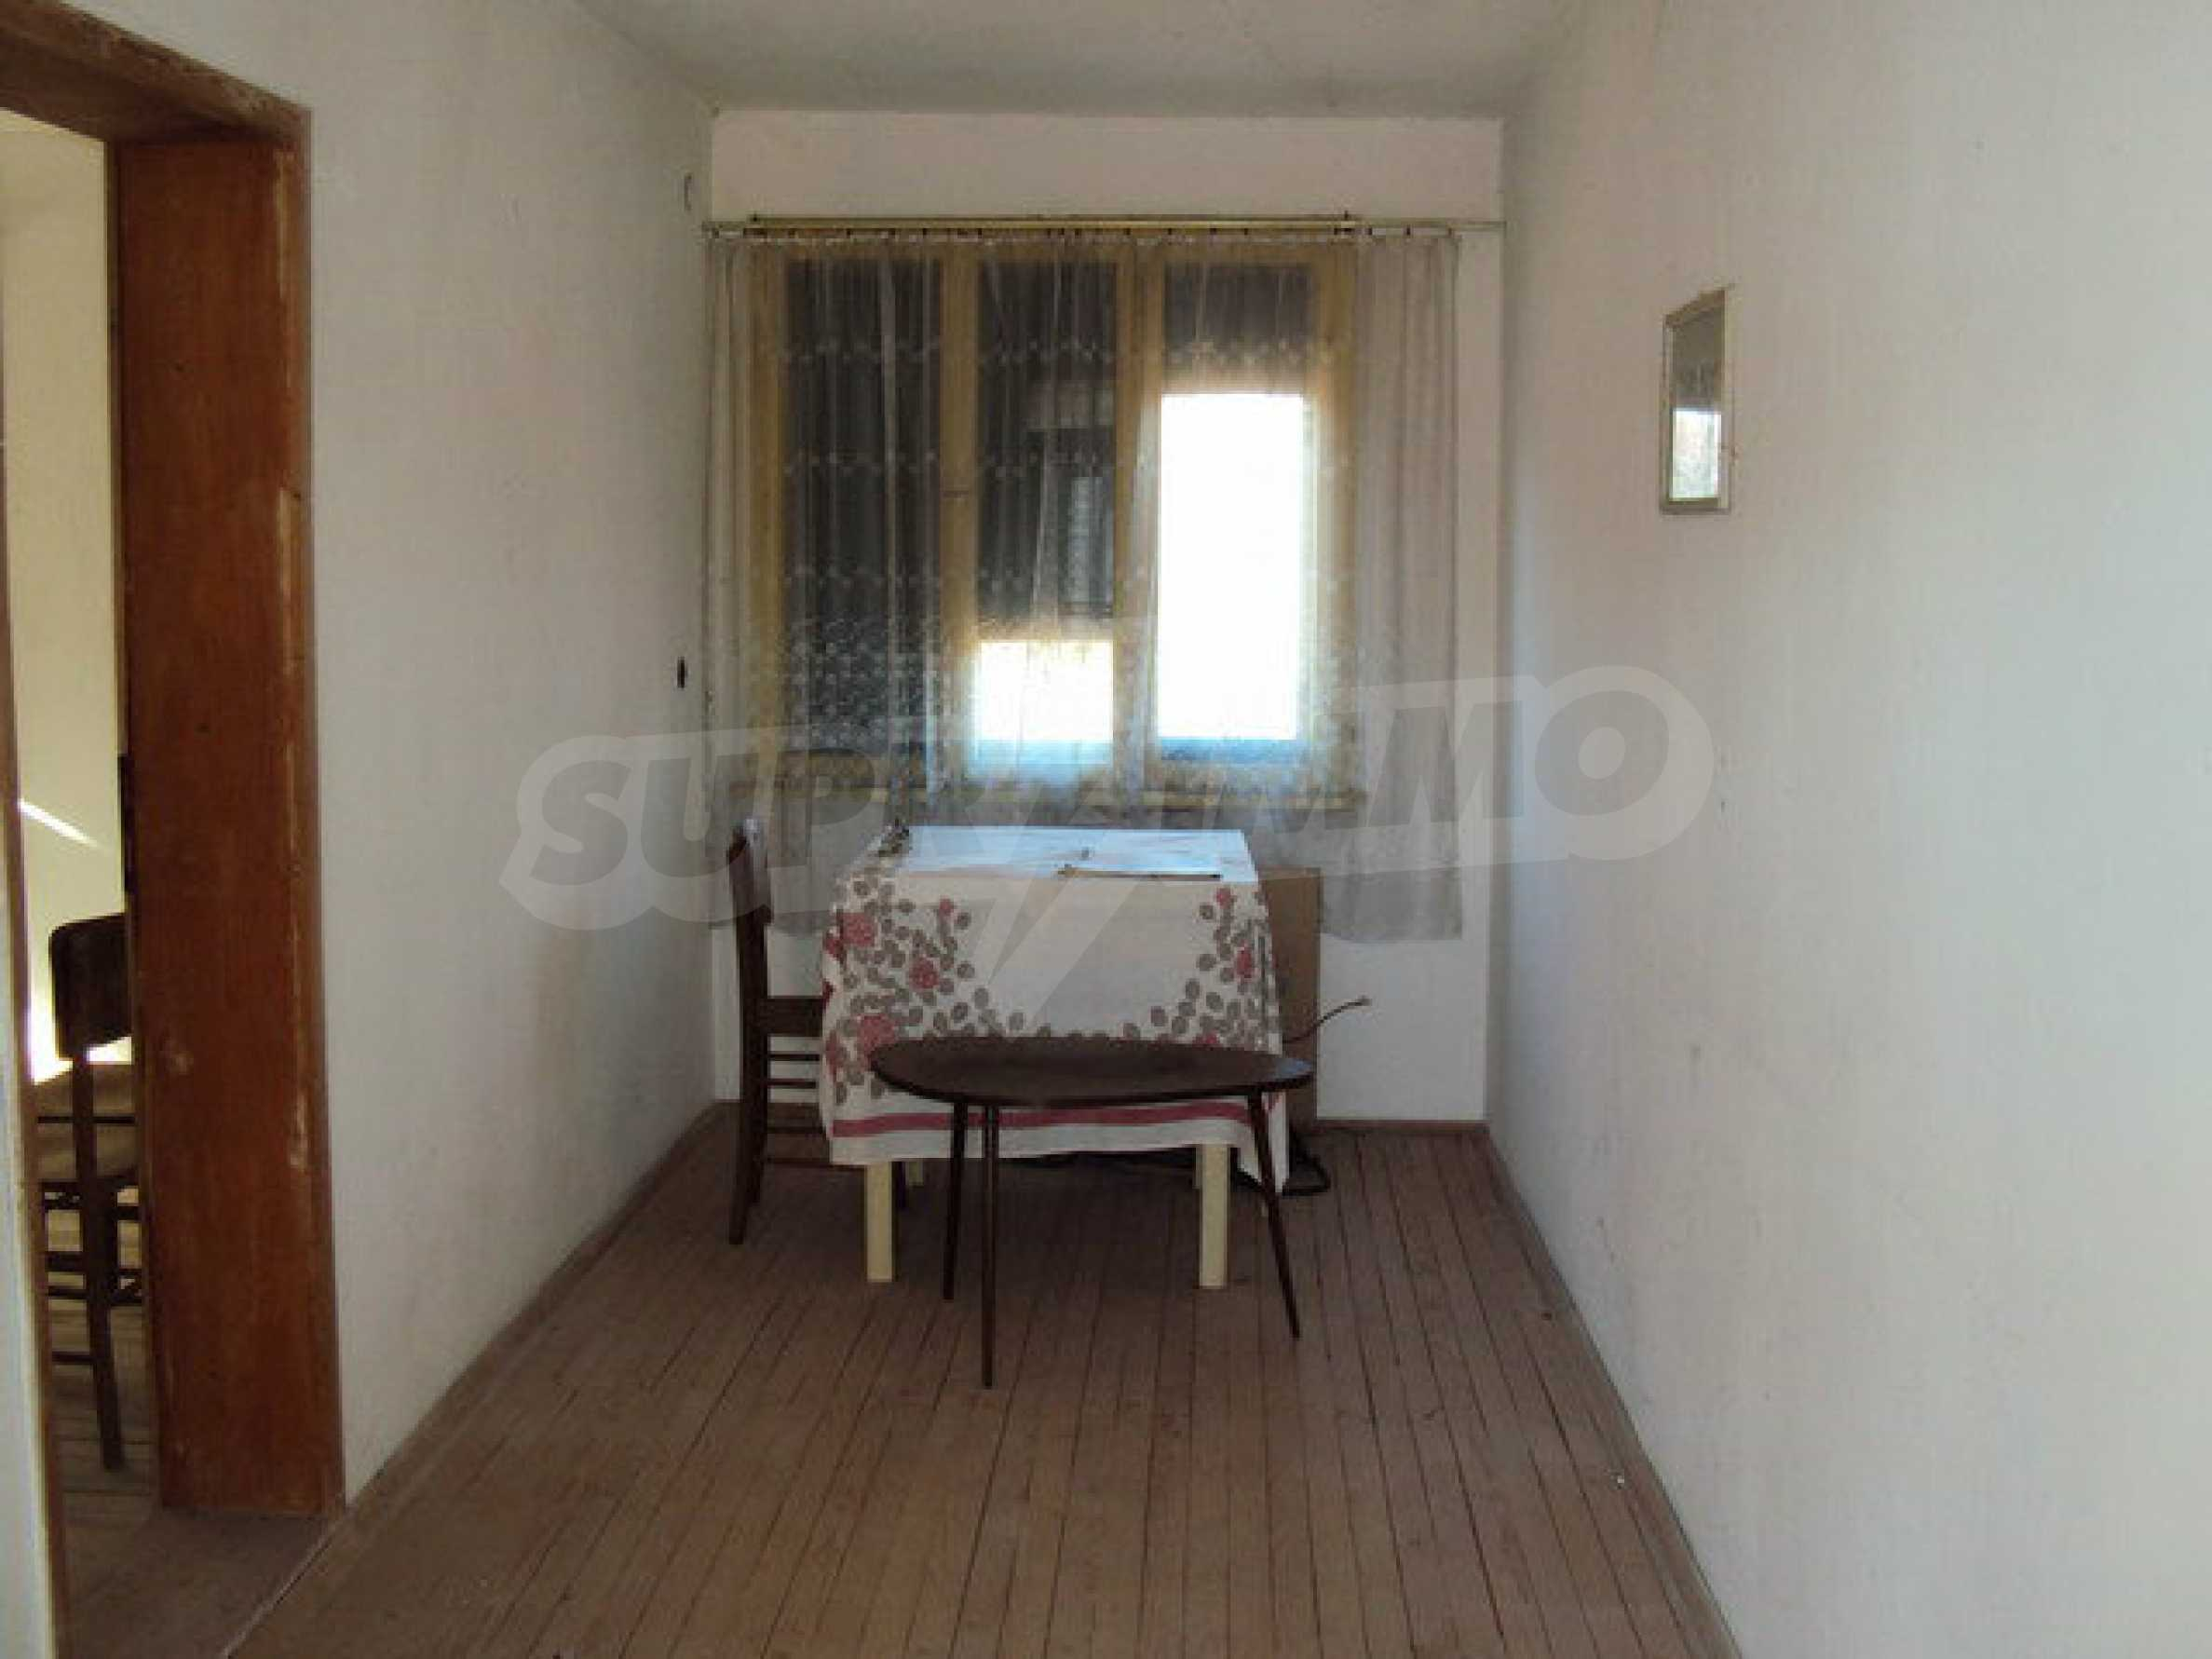 Spacious house in excellent condition in a village 25 km. the old capital of Veliko Tarnovo 9